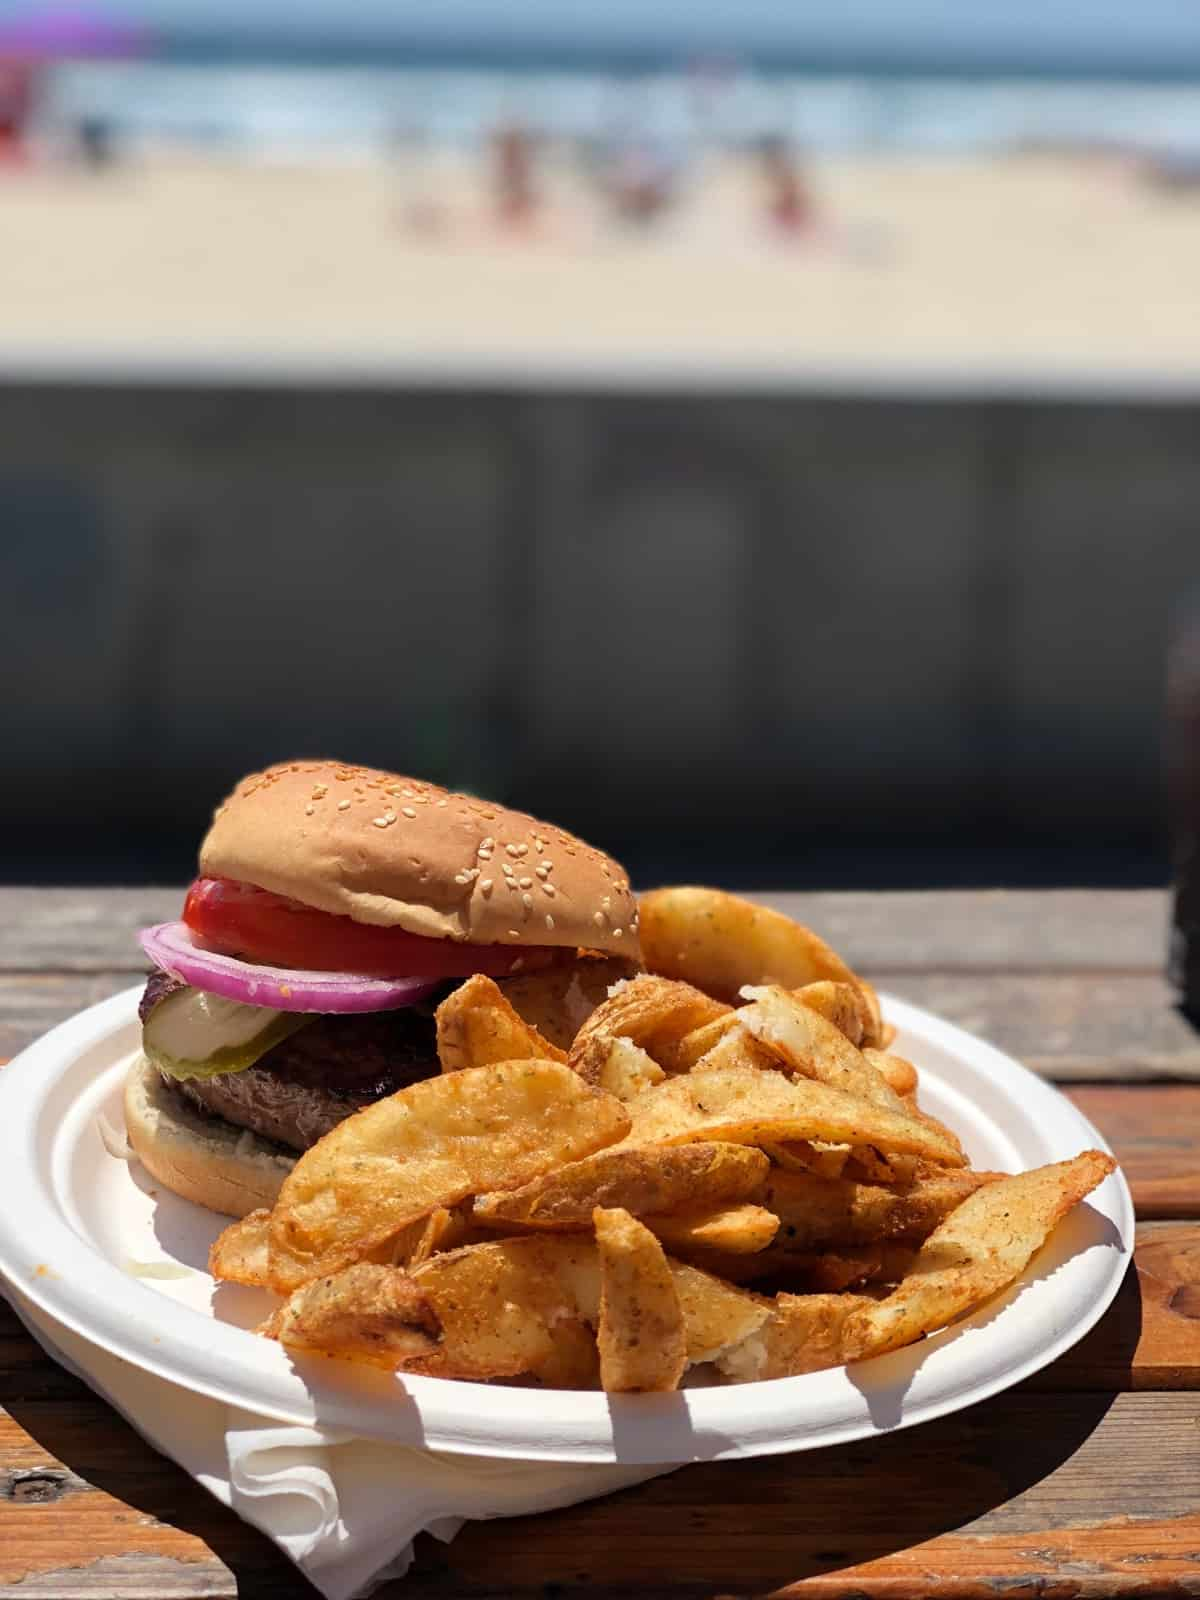 Burger and fries from Woody's on the strand with the beach in the background in San Diego